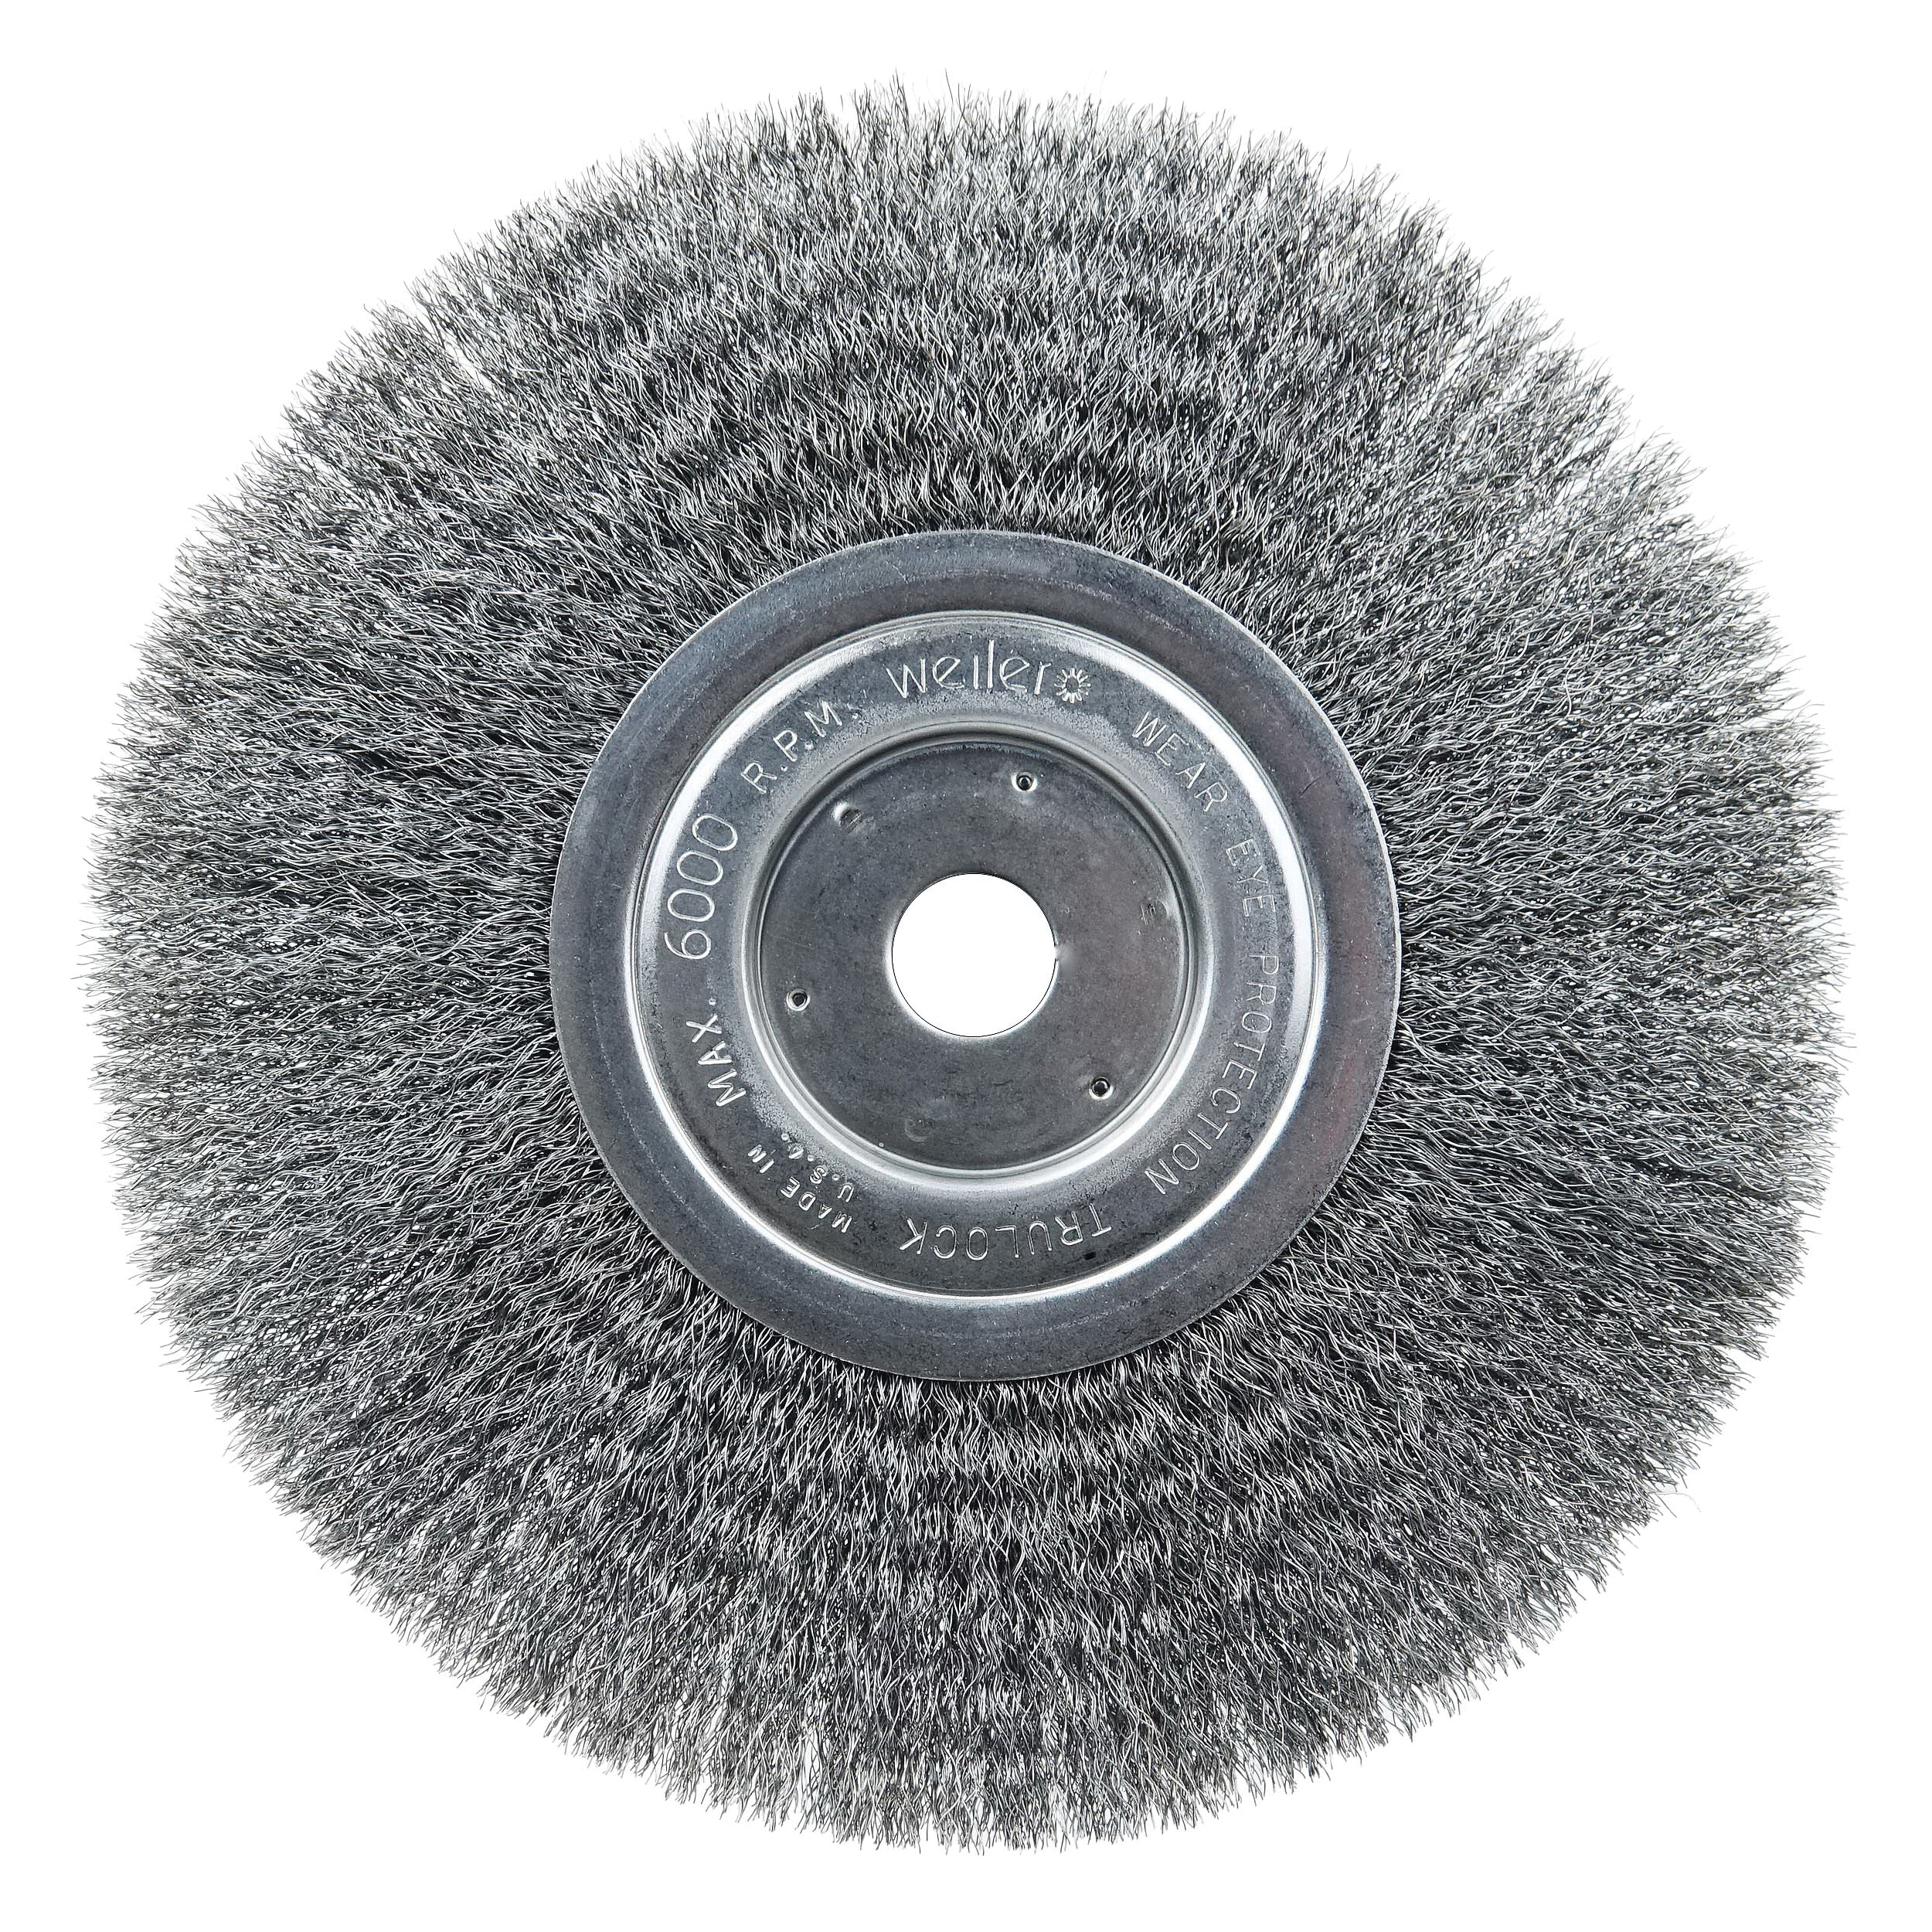 Weiler® 01115 Narrow Face Wheel Brush, 6 in Dia Brush, 1/2 in W Face, 0.0104 in Dia Crimped Filament/Wire, 1/2 to 5/8 in Arbor Hole